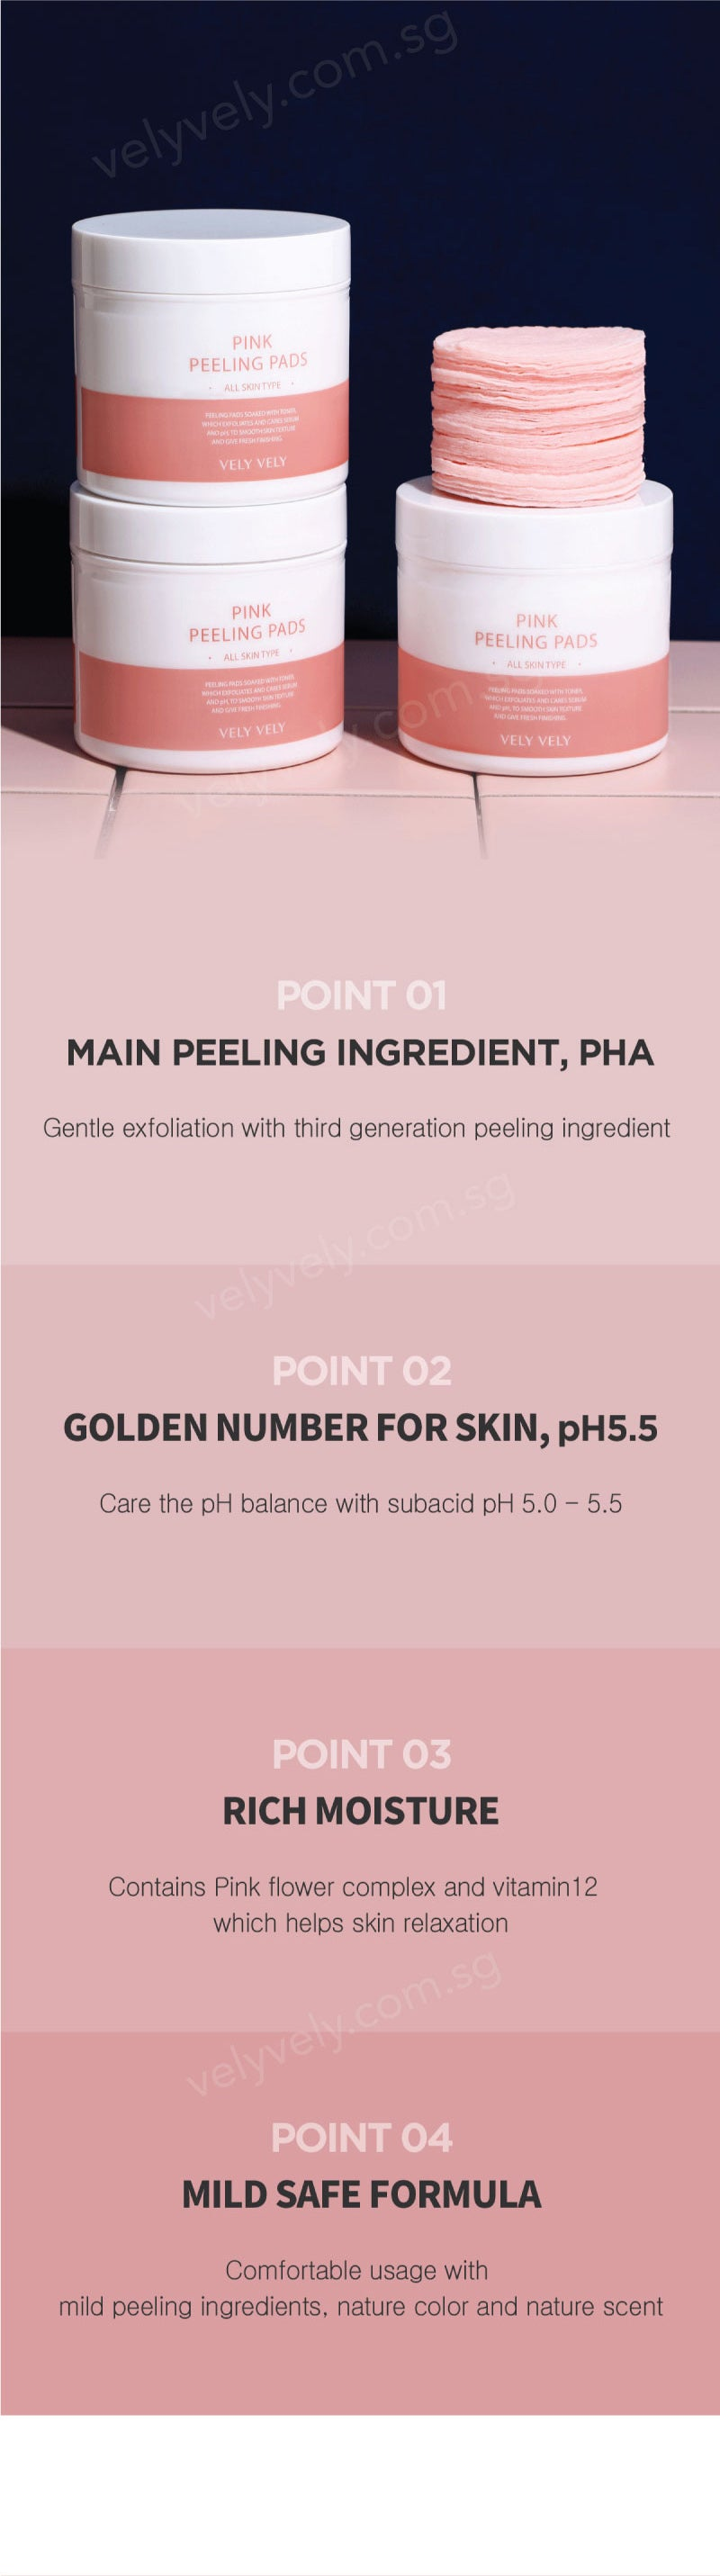 The main peeling ingredient for the Vely Vely Pink Peeling Pads are PHA! They are not only effective but super gentle on your skin! With a balance PH of 5.5 it keeps your skin balanced. With pink flower complex and vitamin 12, it helps keep your skin relax and moisturise. The Vely Vely Pink Peeling Pads is a mild safe formula that contains mild peeling ingredients, with no artificial colours or fragrances!